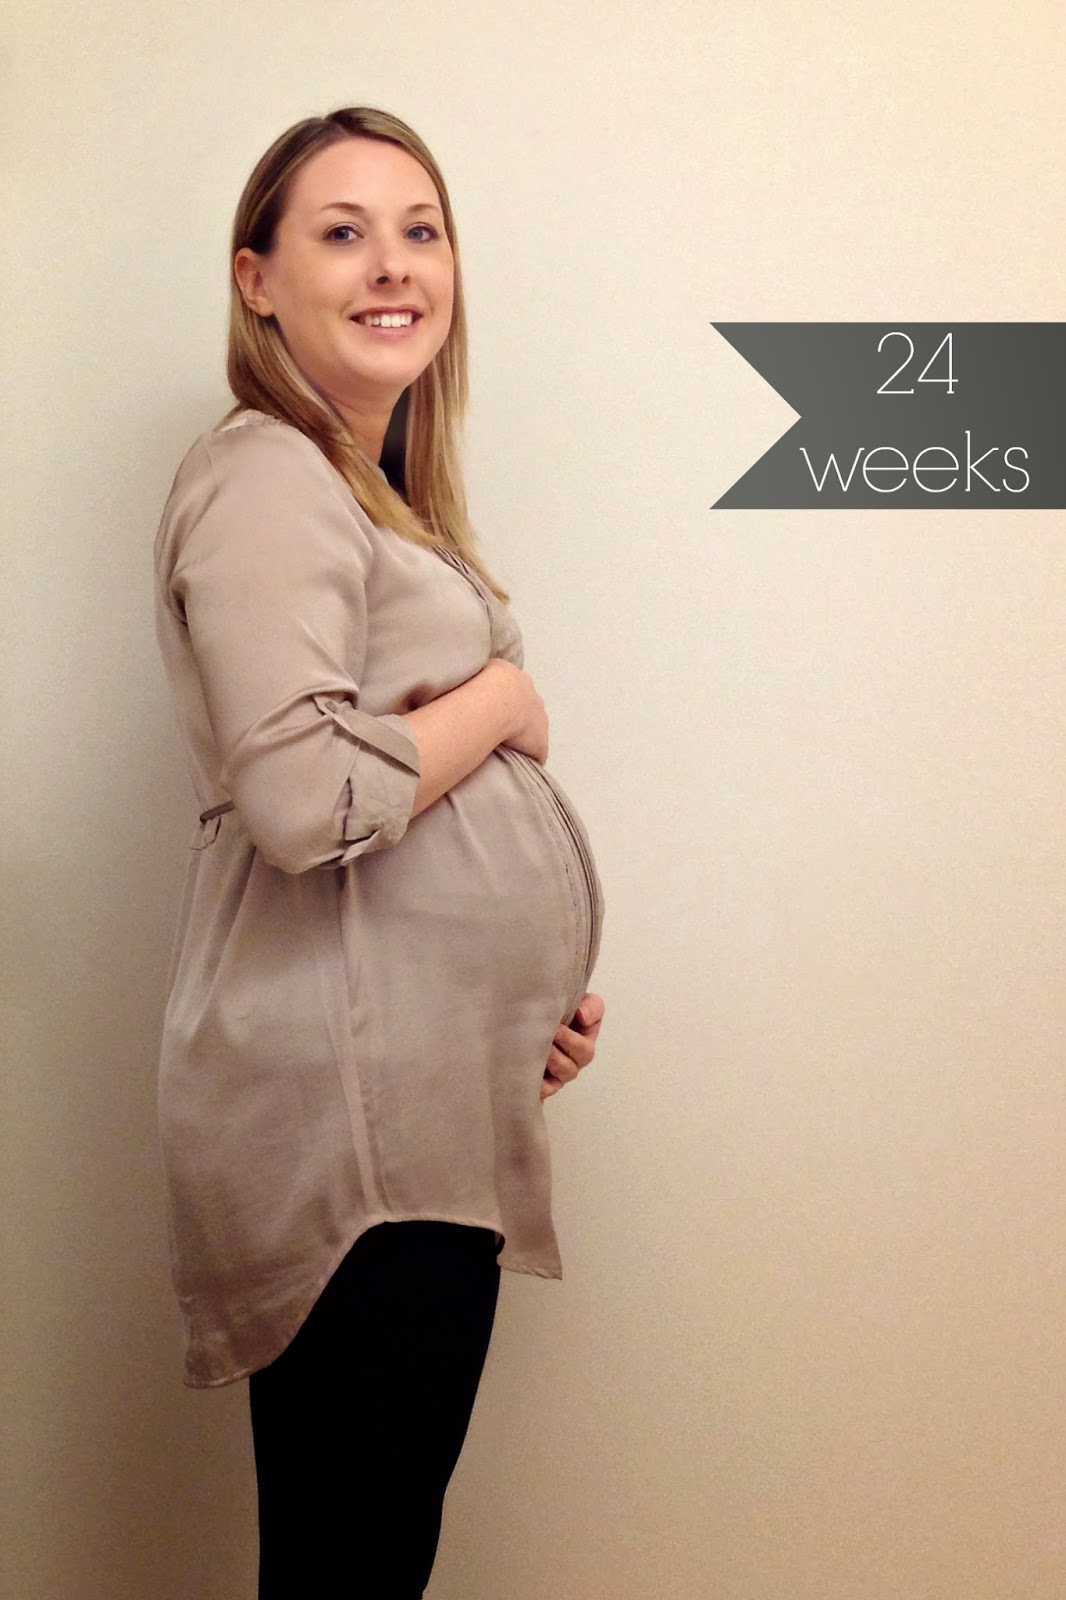 22 weeks pregnant and feeling lonely in a relationship